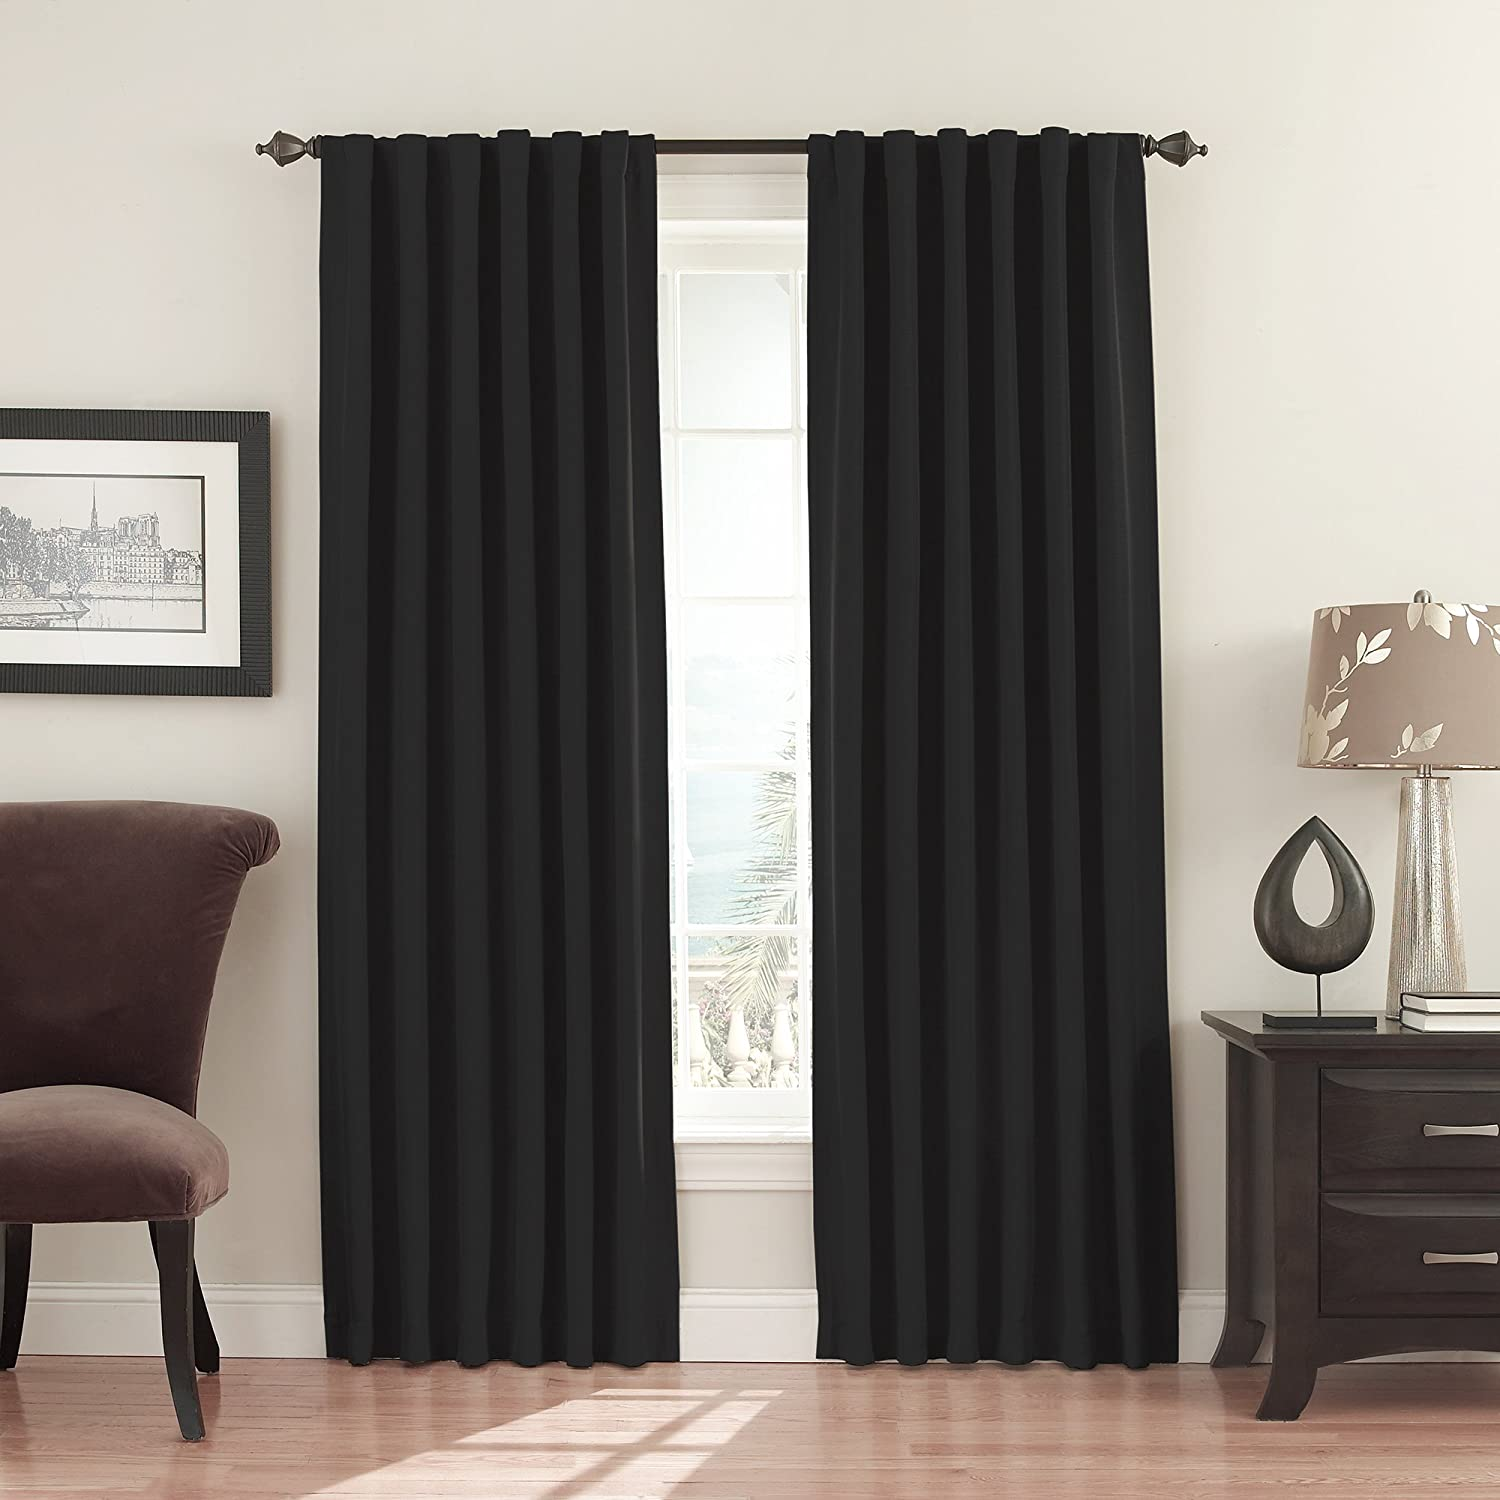 Eclipse Fresno Blackout Window Curtain Panel, 52 x 63-Inch, Black